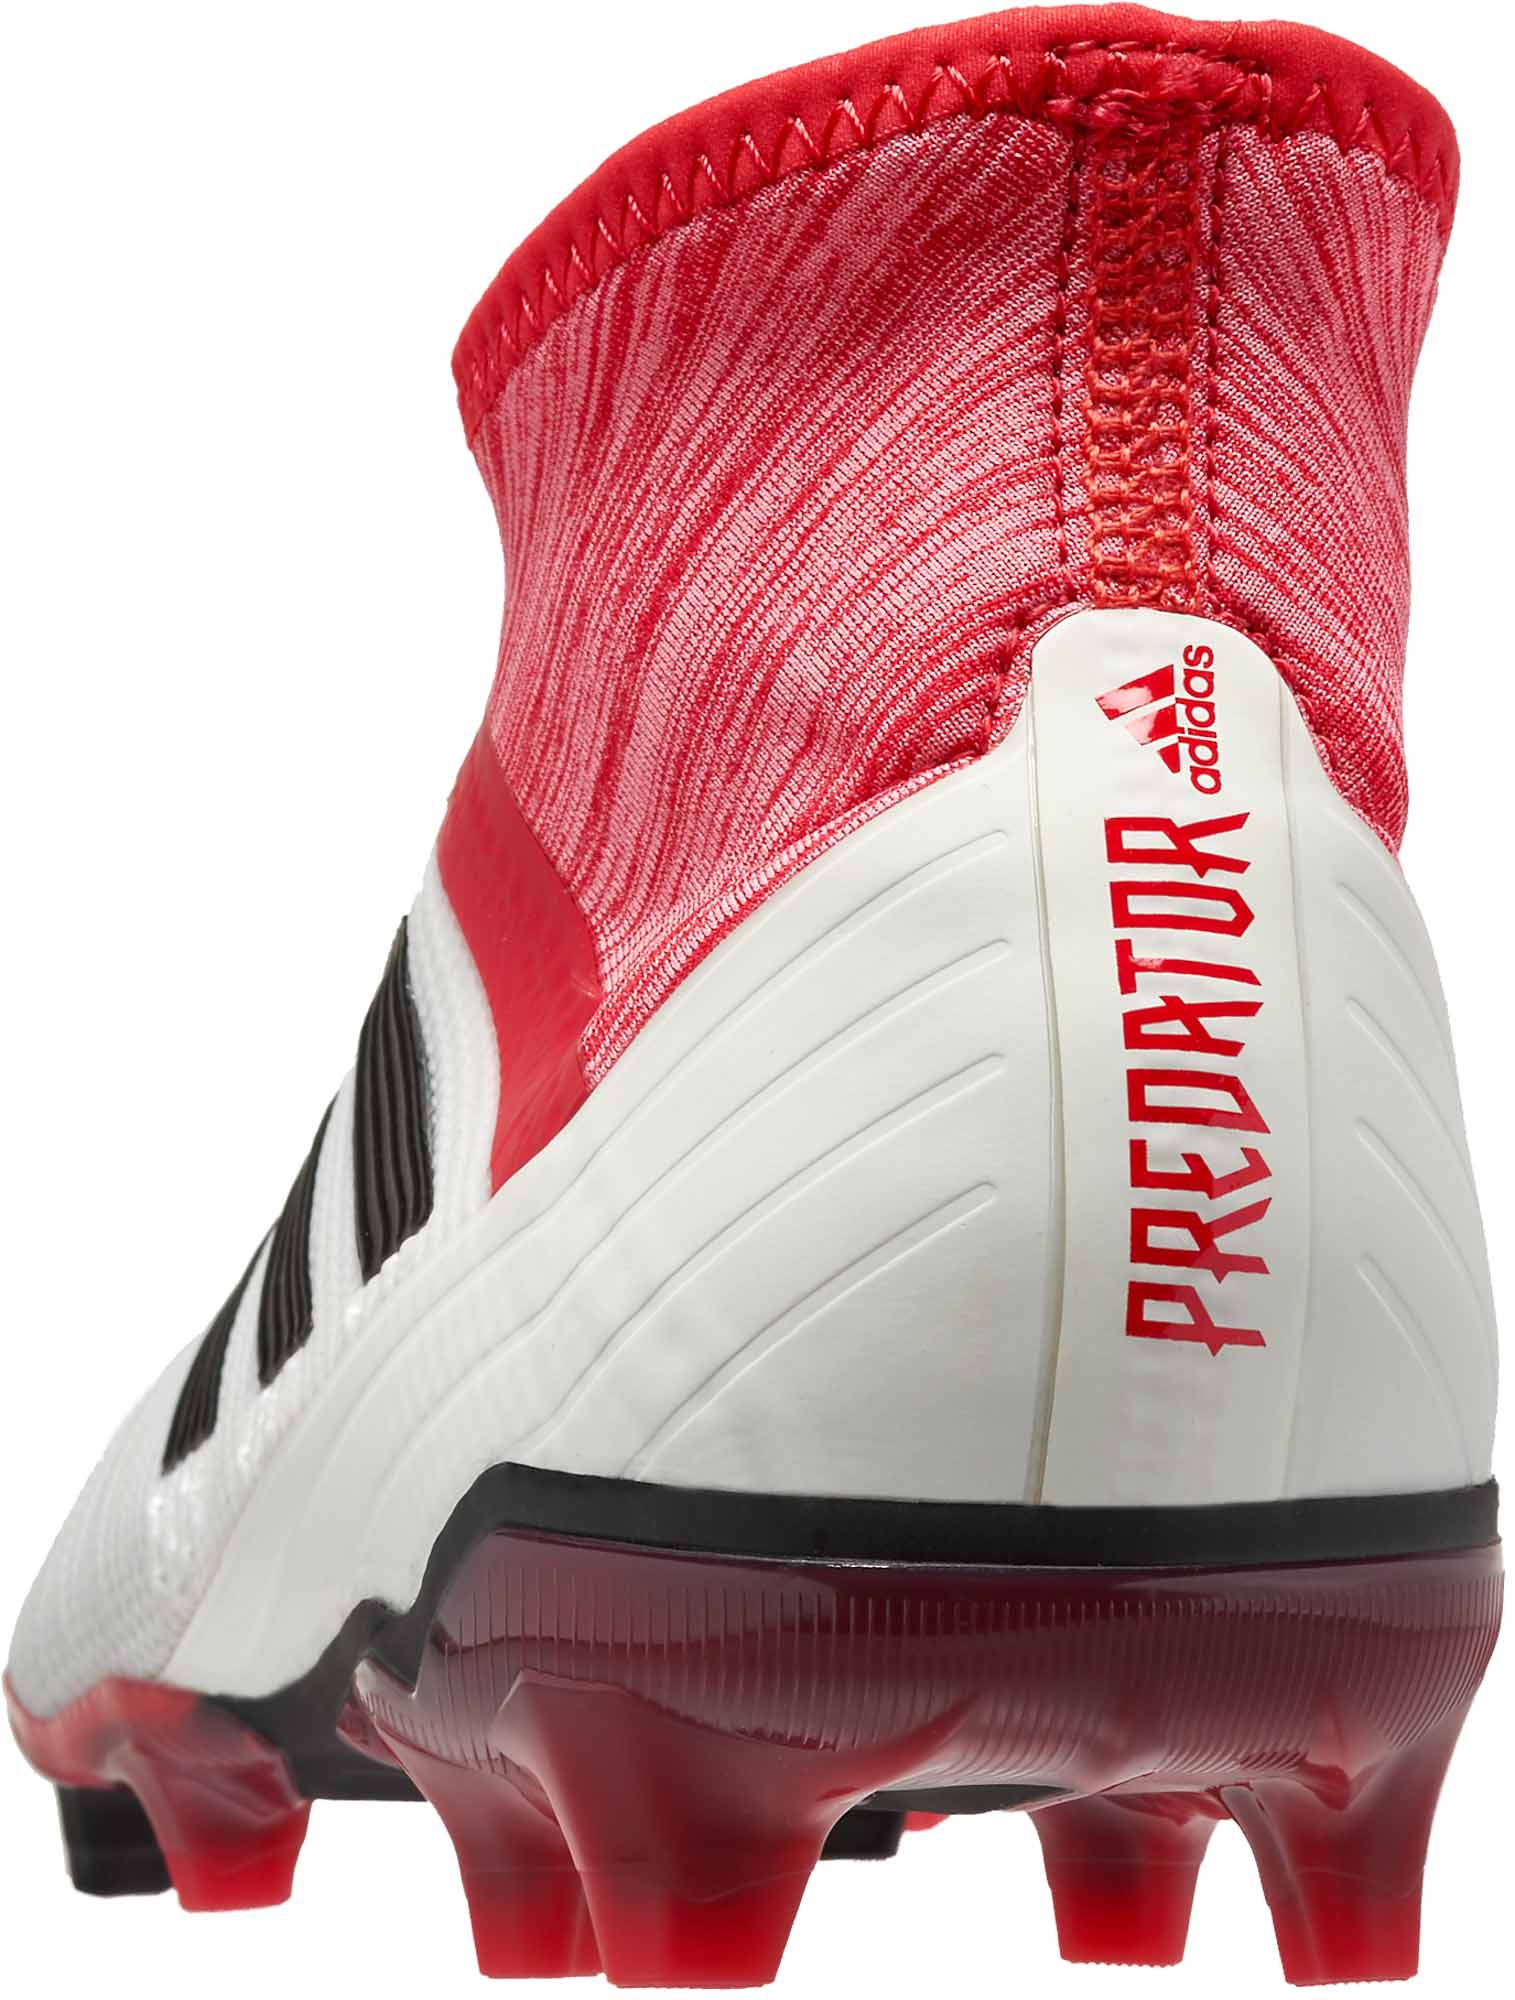 Adidas Predator 18.2 FG 'Cold Blooded Pack' | UNBOXING | football boots | 2018 | 4K